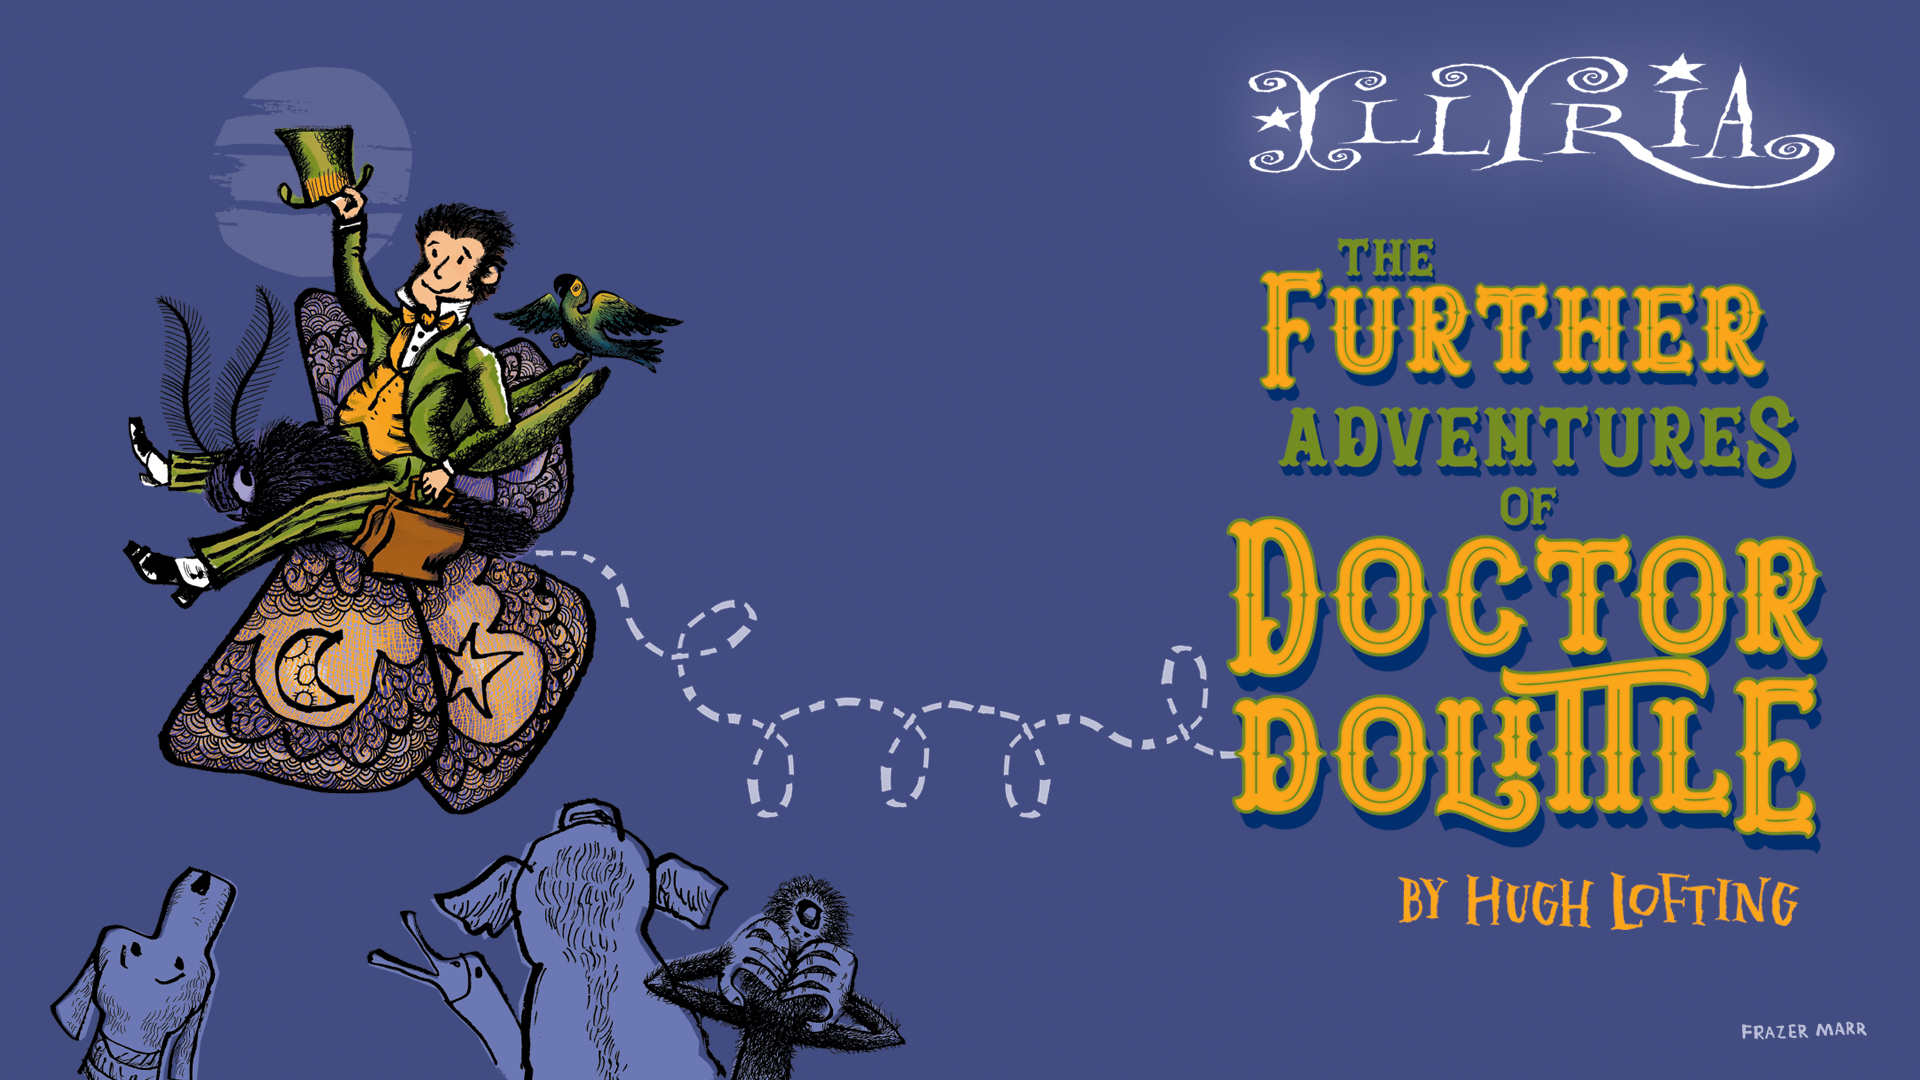 Illyria: The Further Adventures Of Doctor Dolittle (29.7.21)